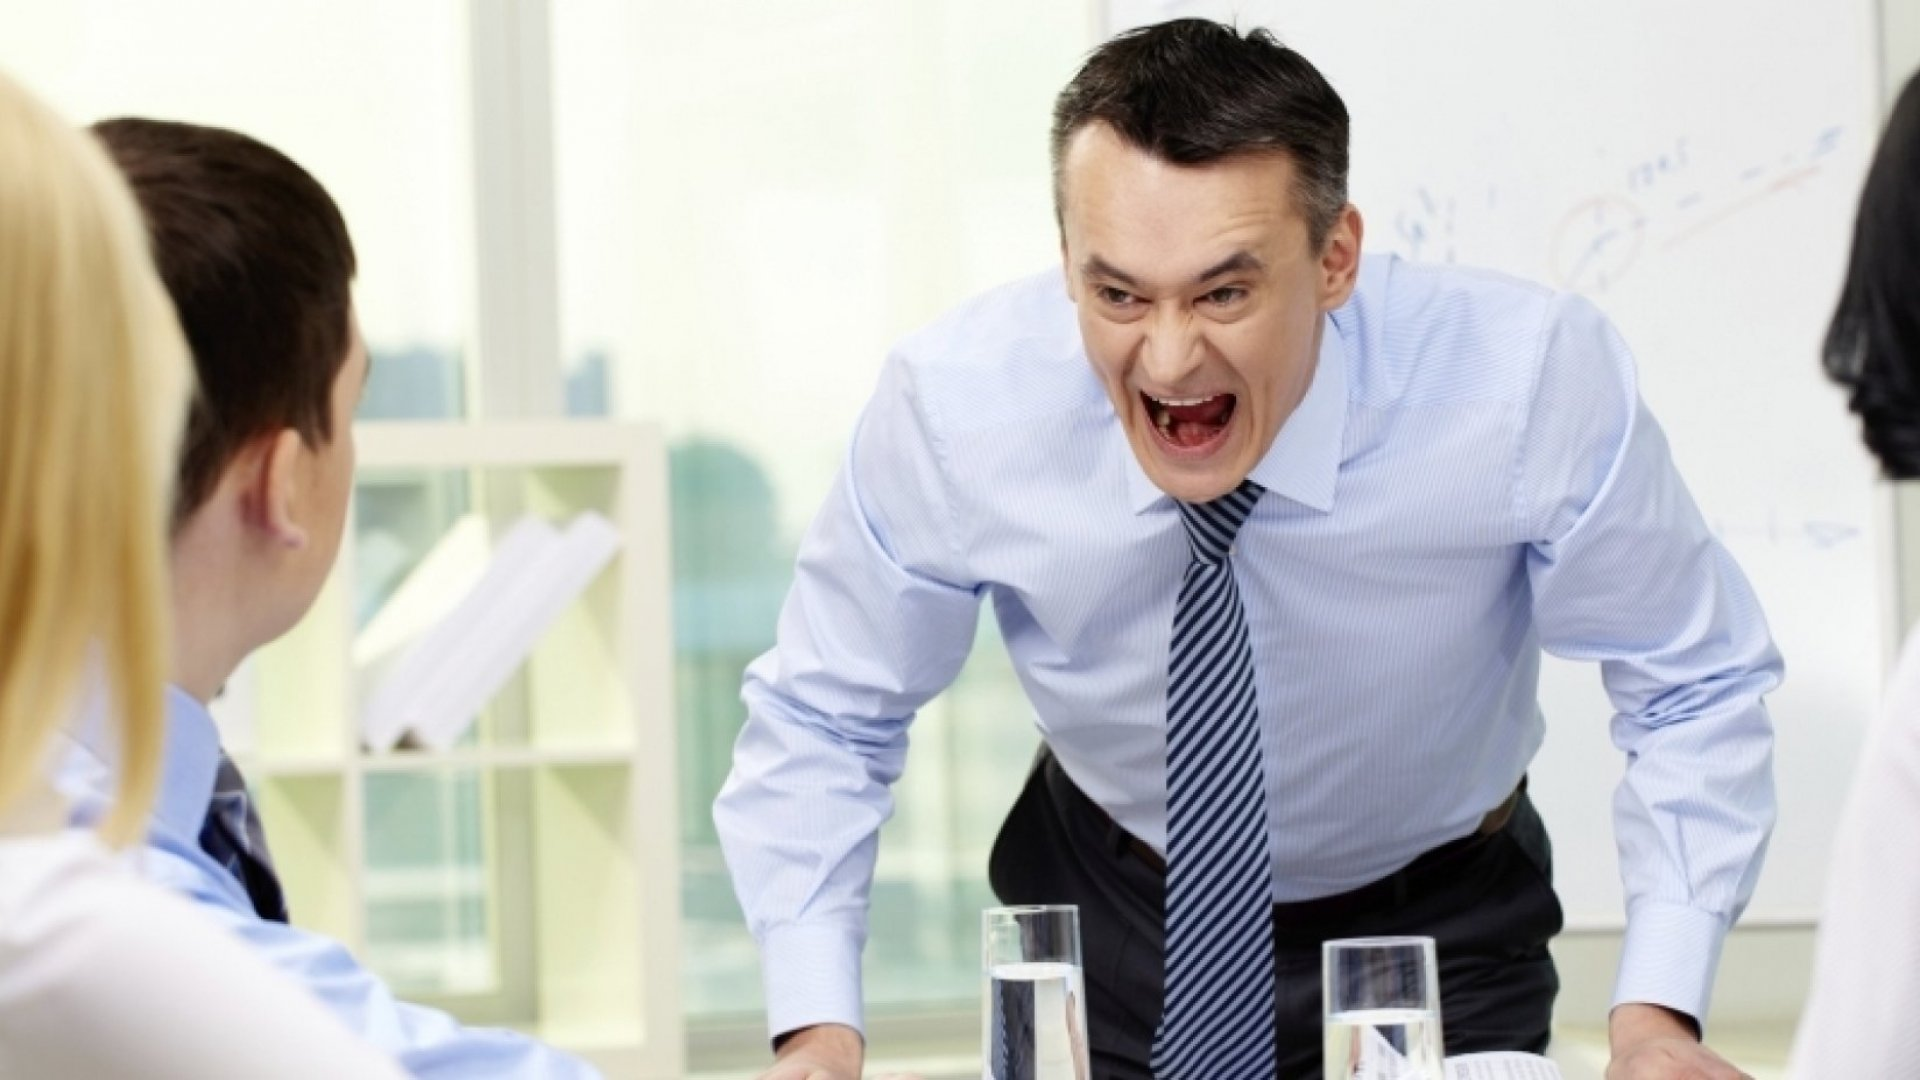 4 Signs Your Boss Is Bad For Your Health